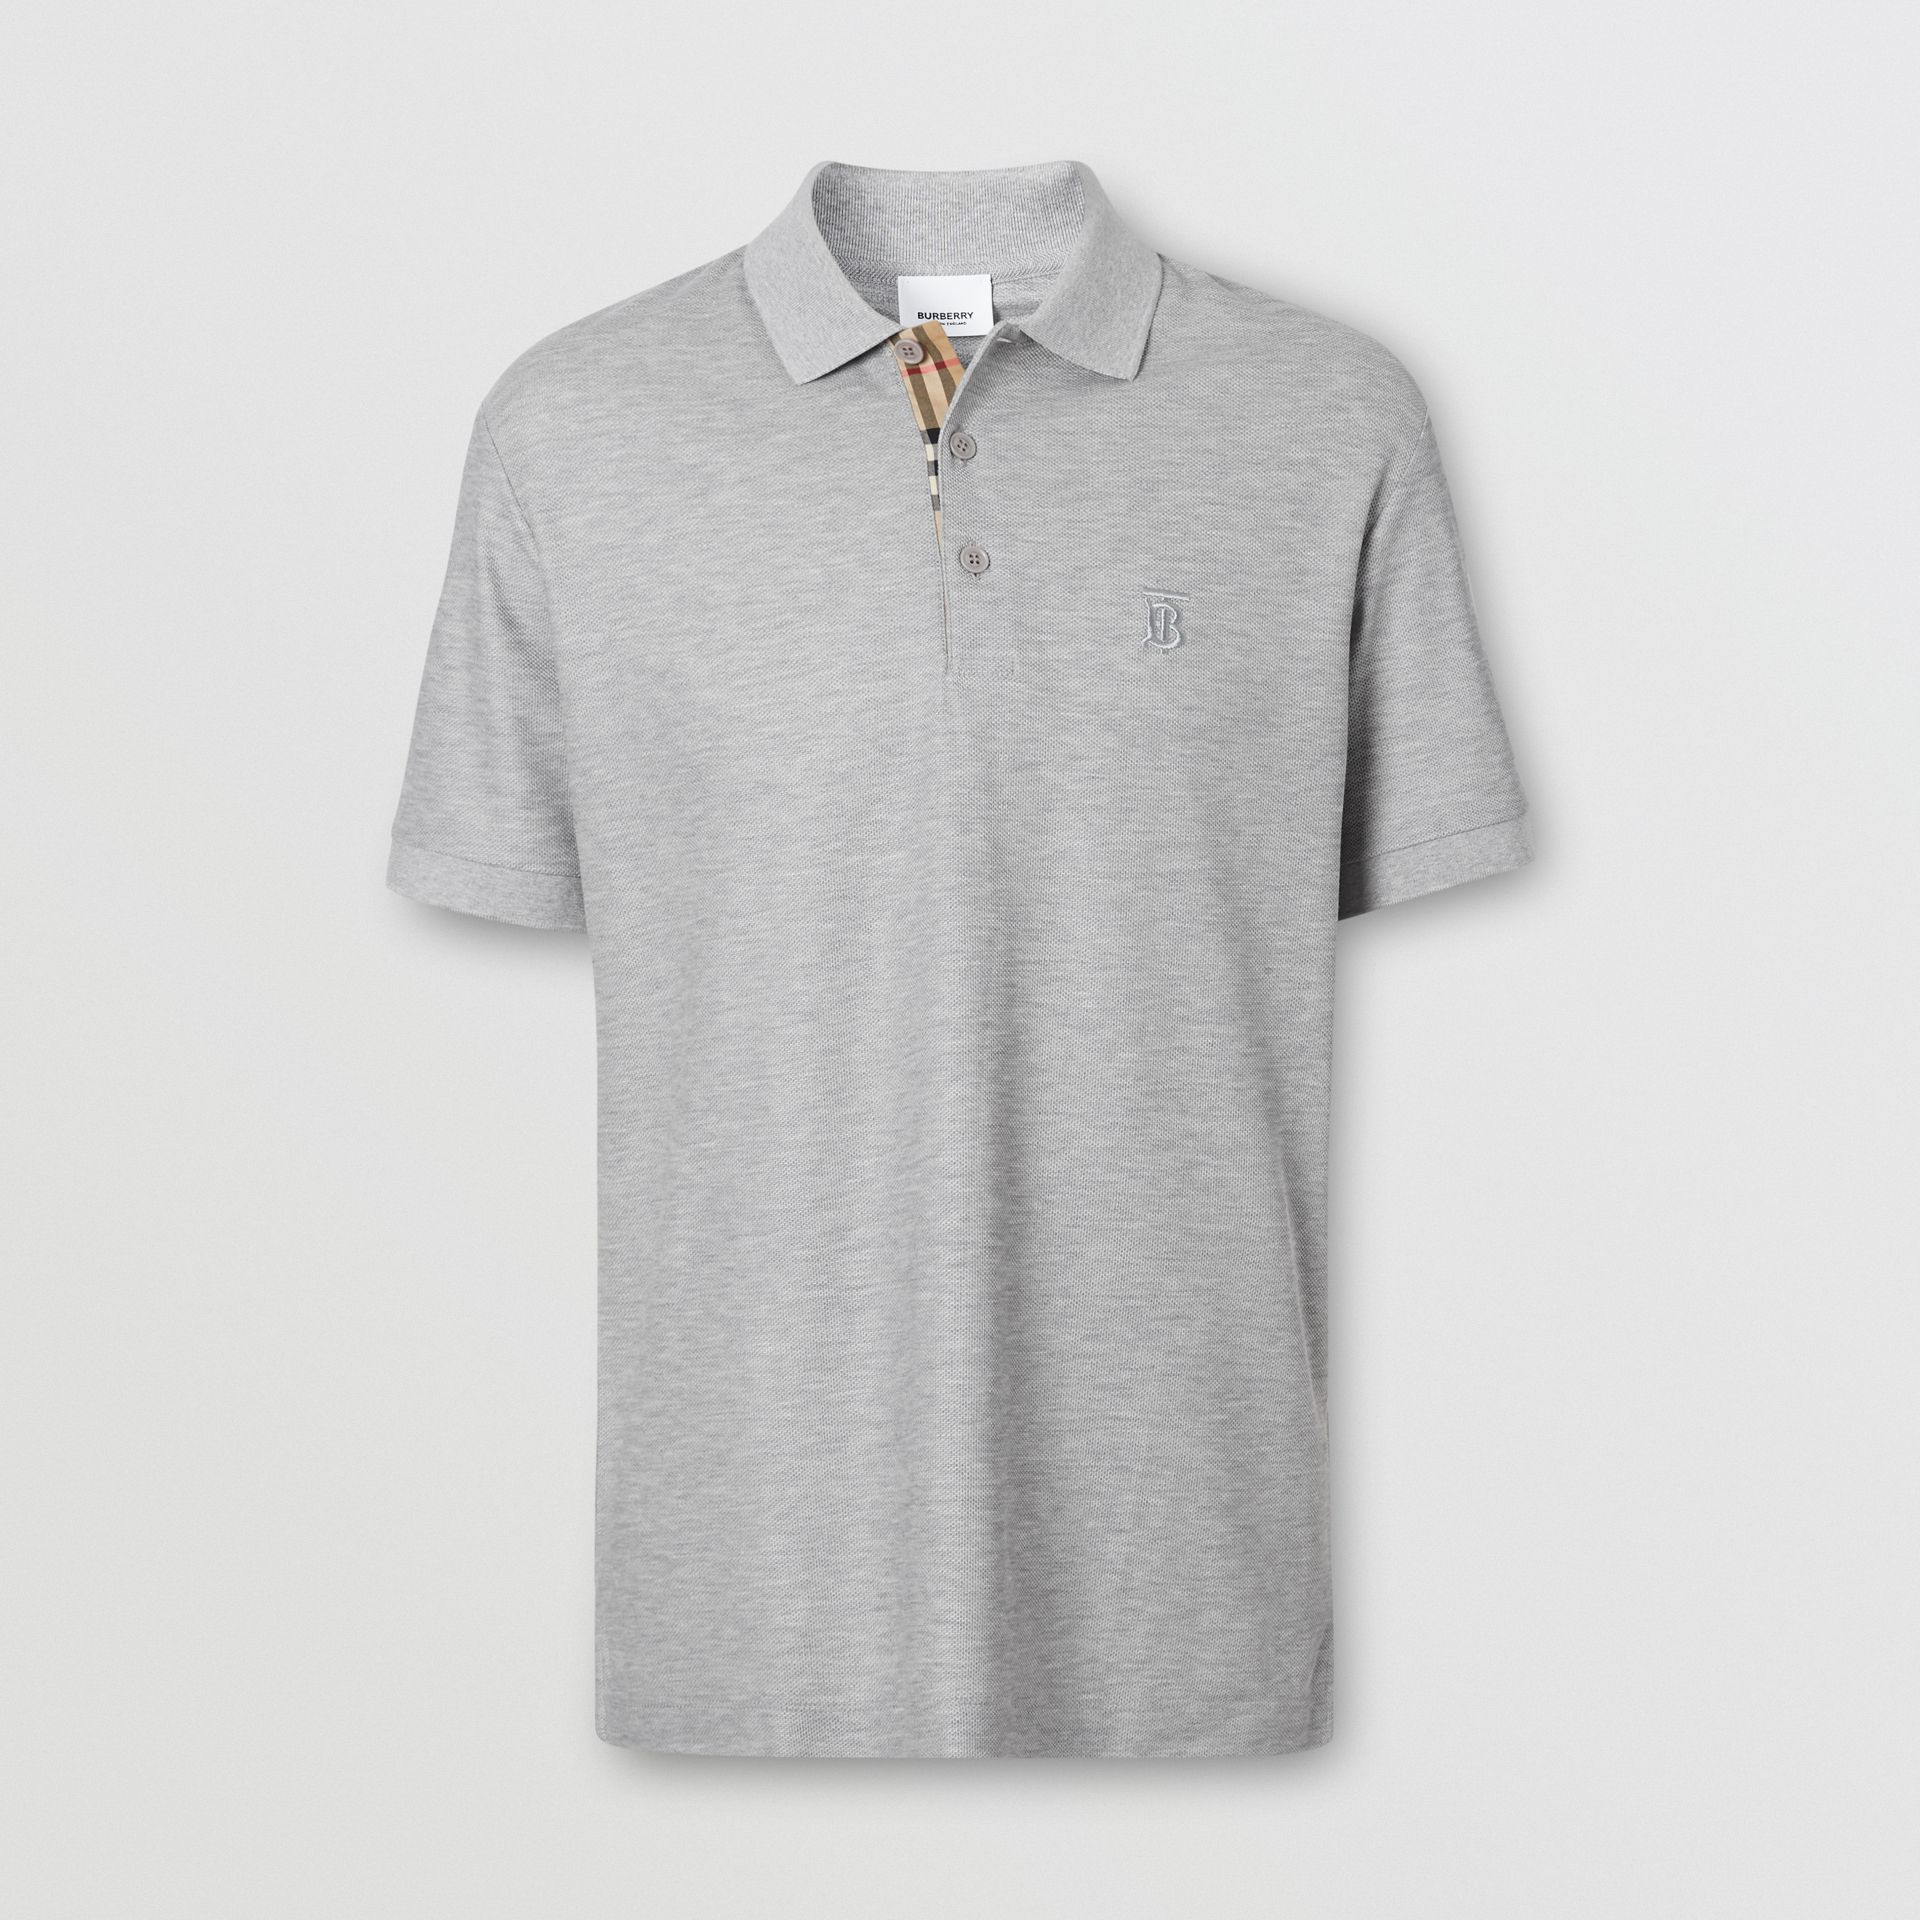 Monogram Motif Cotton Piqué Polo Shirt in Pale Grey Melange - Men | Burberry - gallery image 3